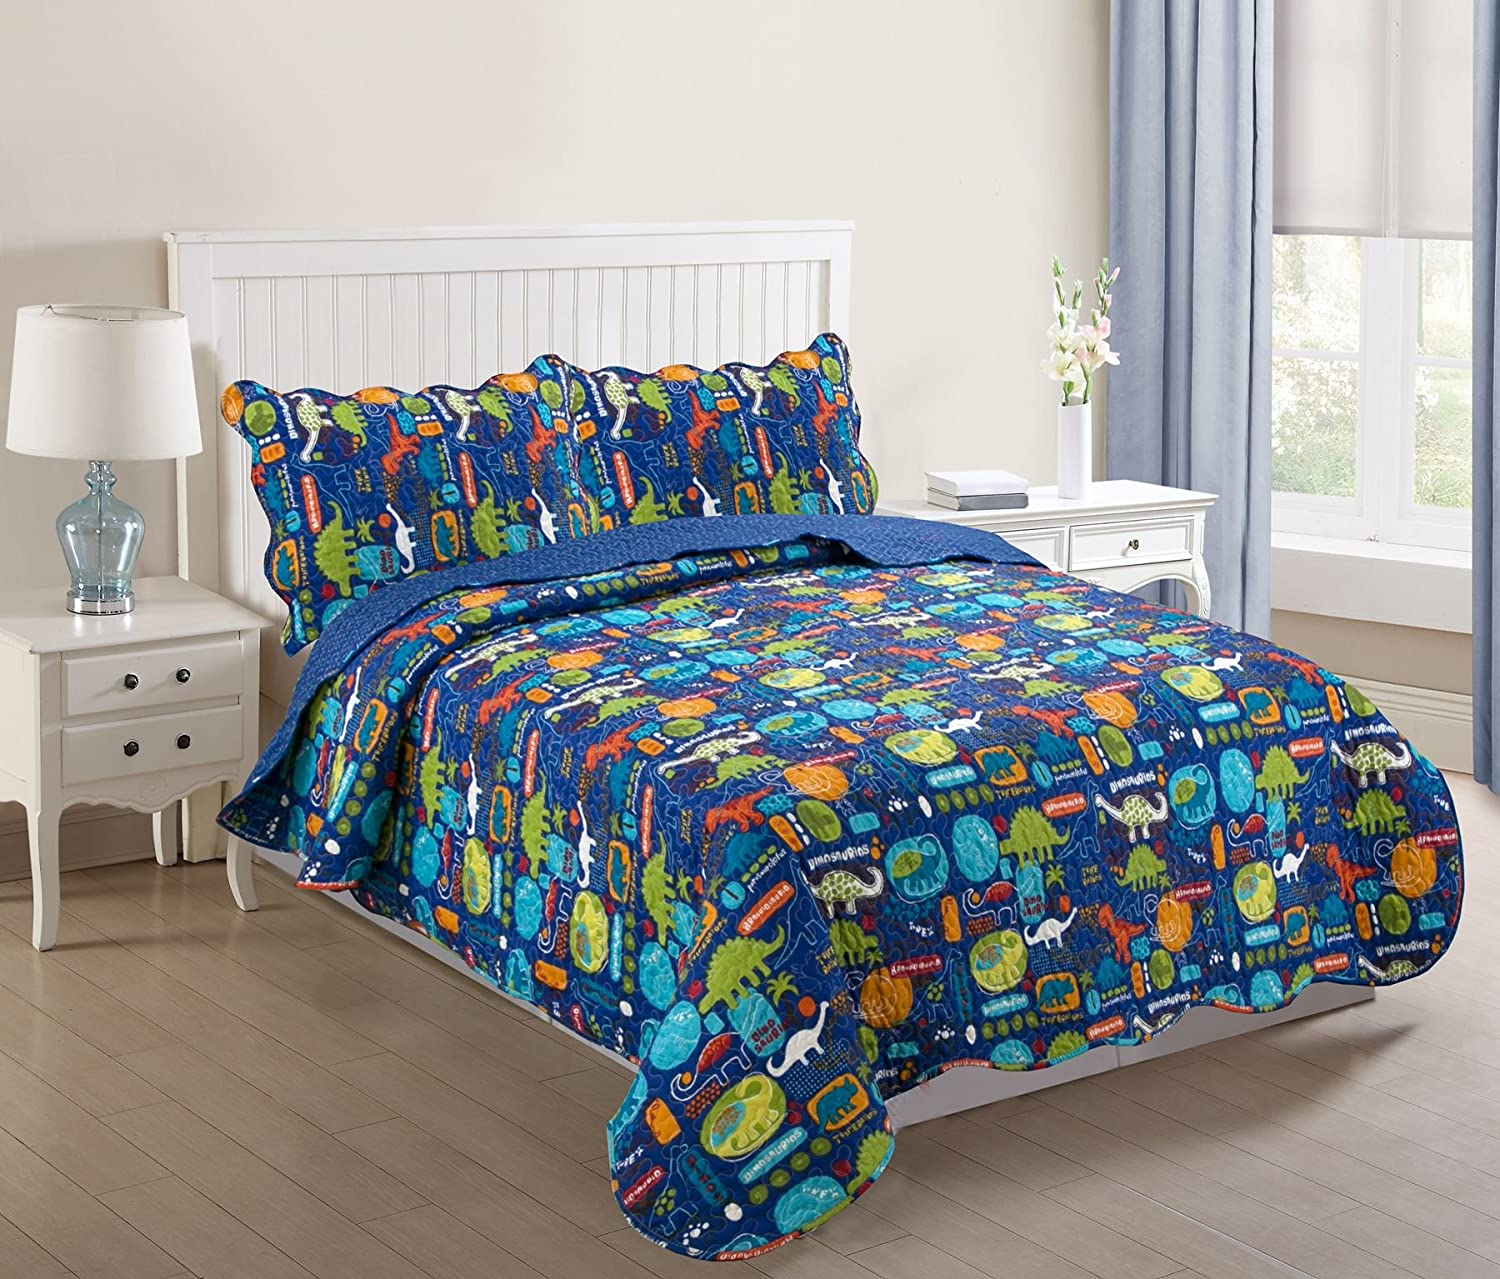 MarCielo 3 Piece Kids Bedspread Quilts Set Throw Blanket for Teens Boys Girls Bed Printed Bedding Coverlet